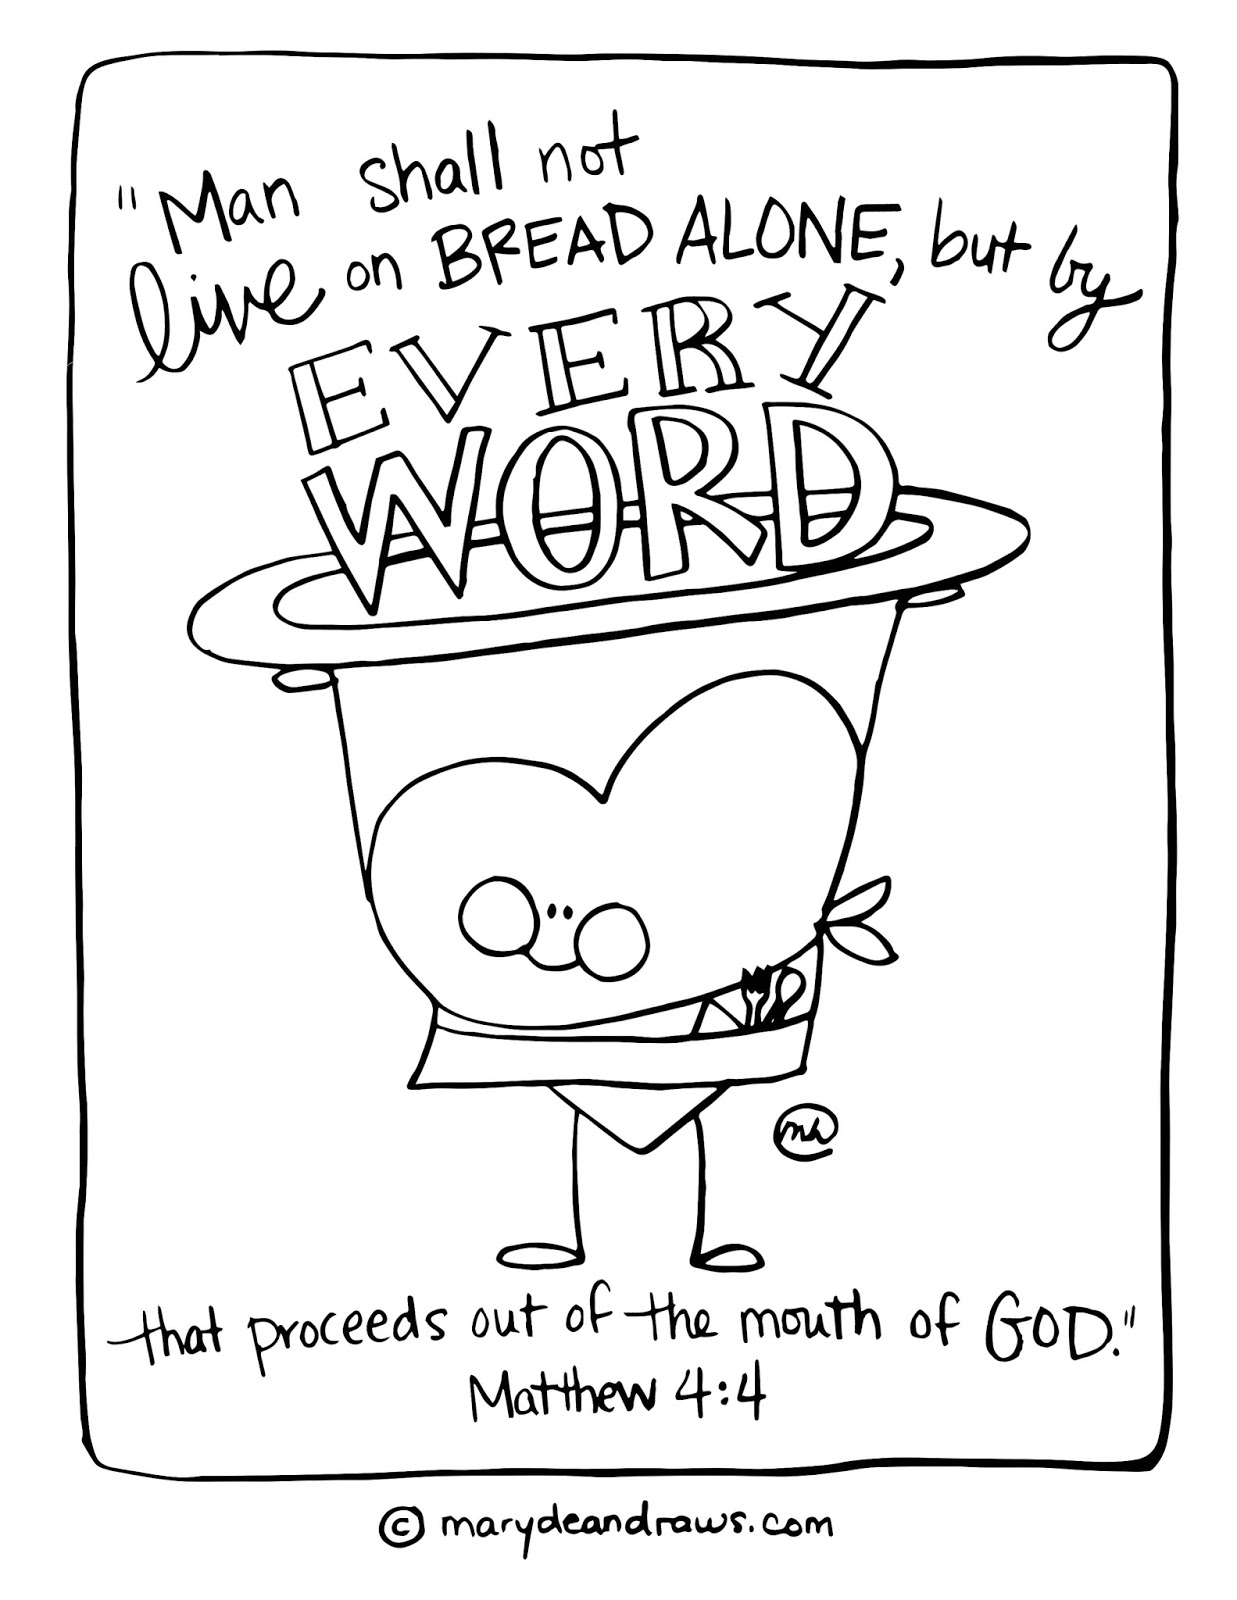 waiting on the word and eating the better bread matthew 4 4 Hiding From God Scripture matthew 4 4 man does not live on bread alone printable coloring pages